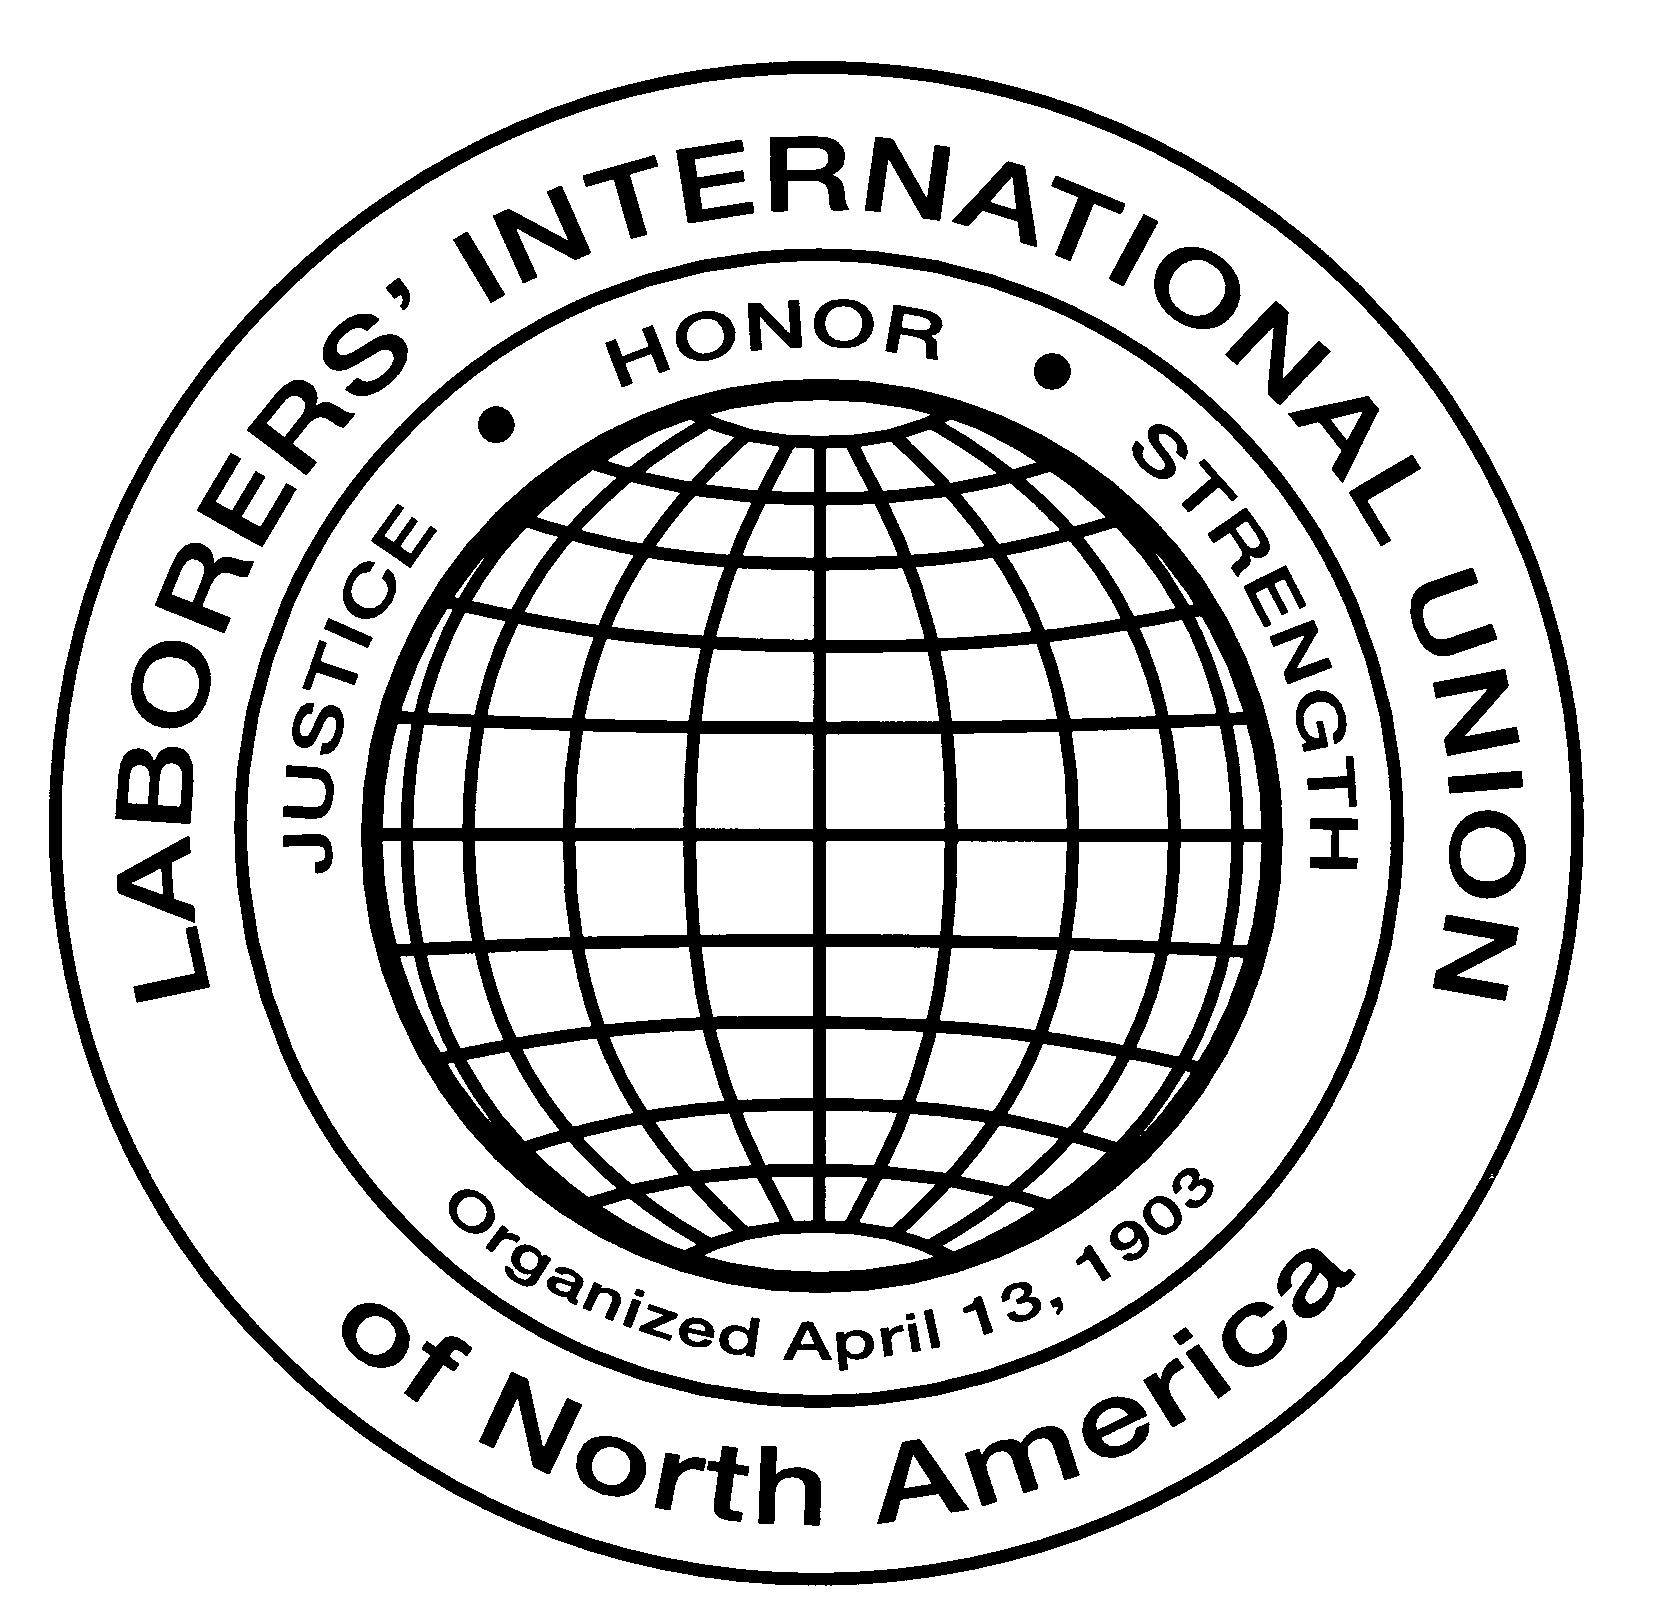 Laborers' International Union